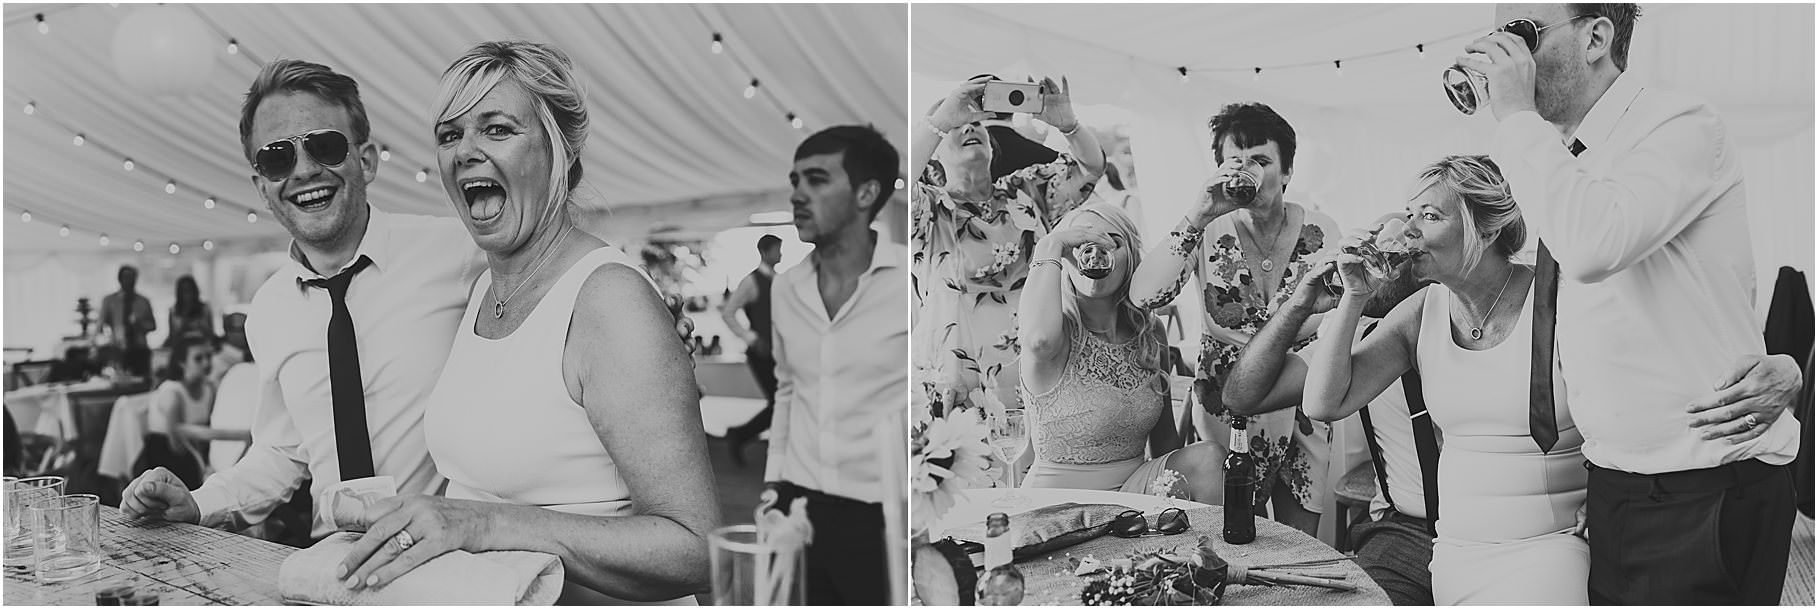 Rutland Weddings Exton Hall Exton Oakham Rutland Water Photographer 1110 - Mr and Mrs Barker // RUTLAND WEDDING